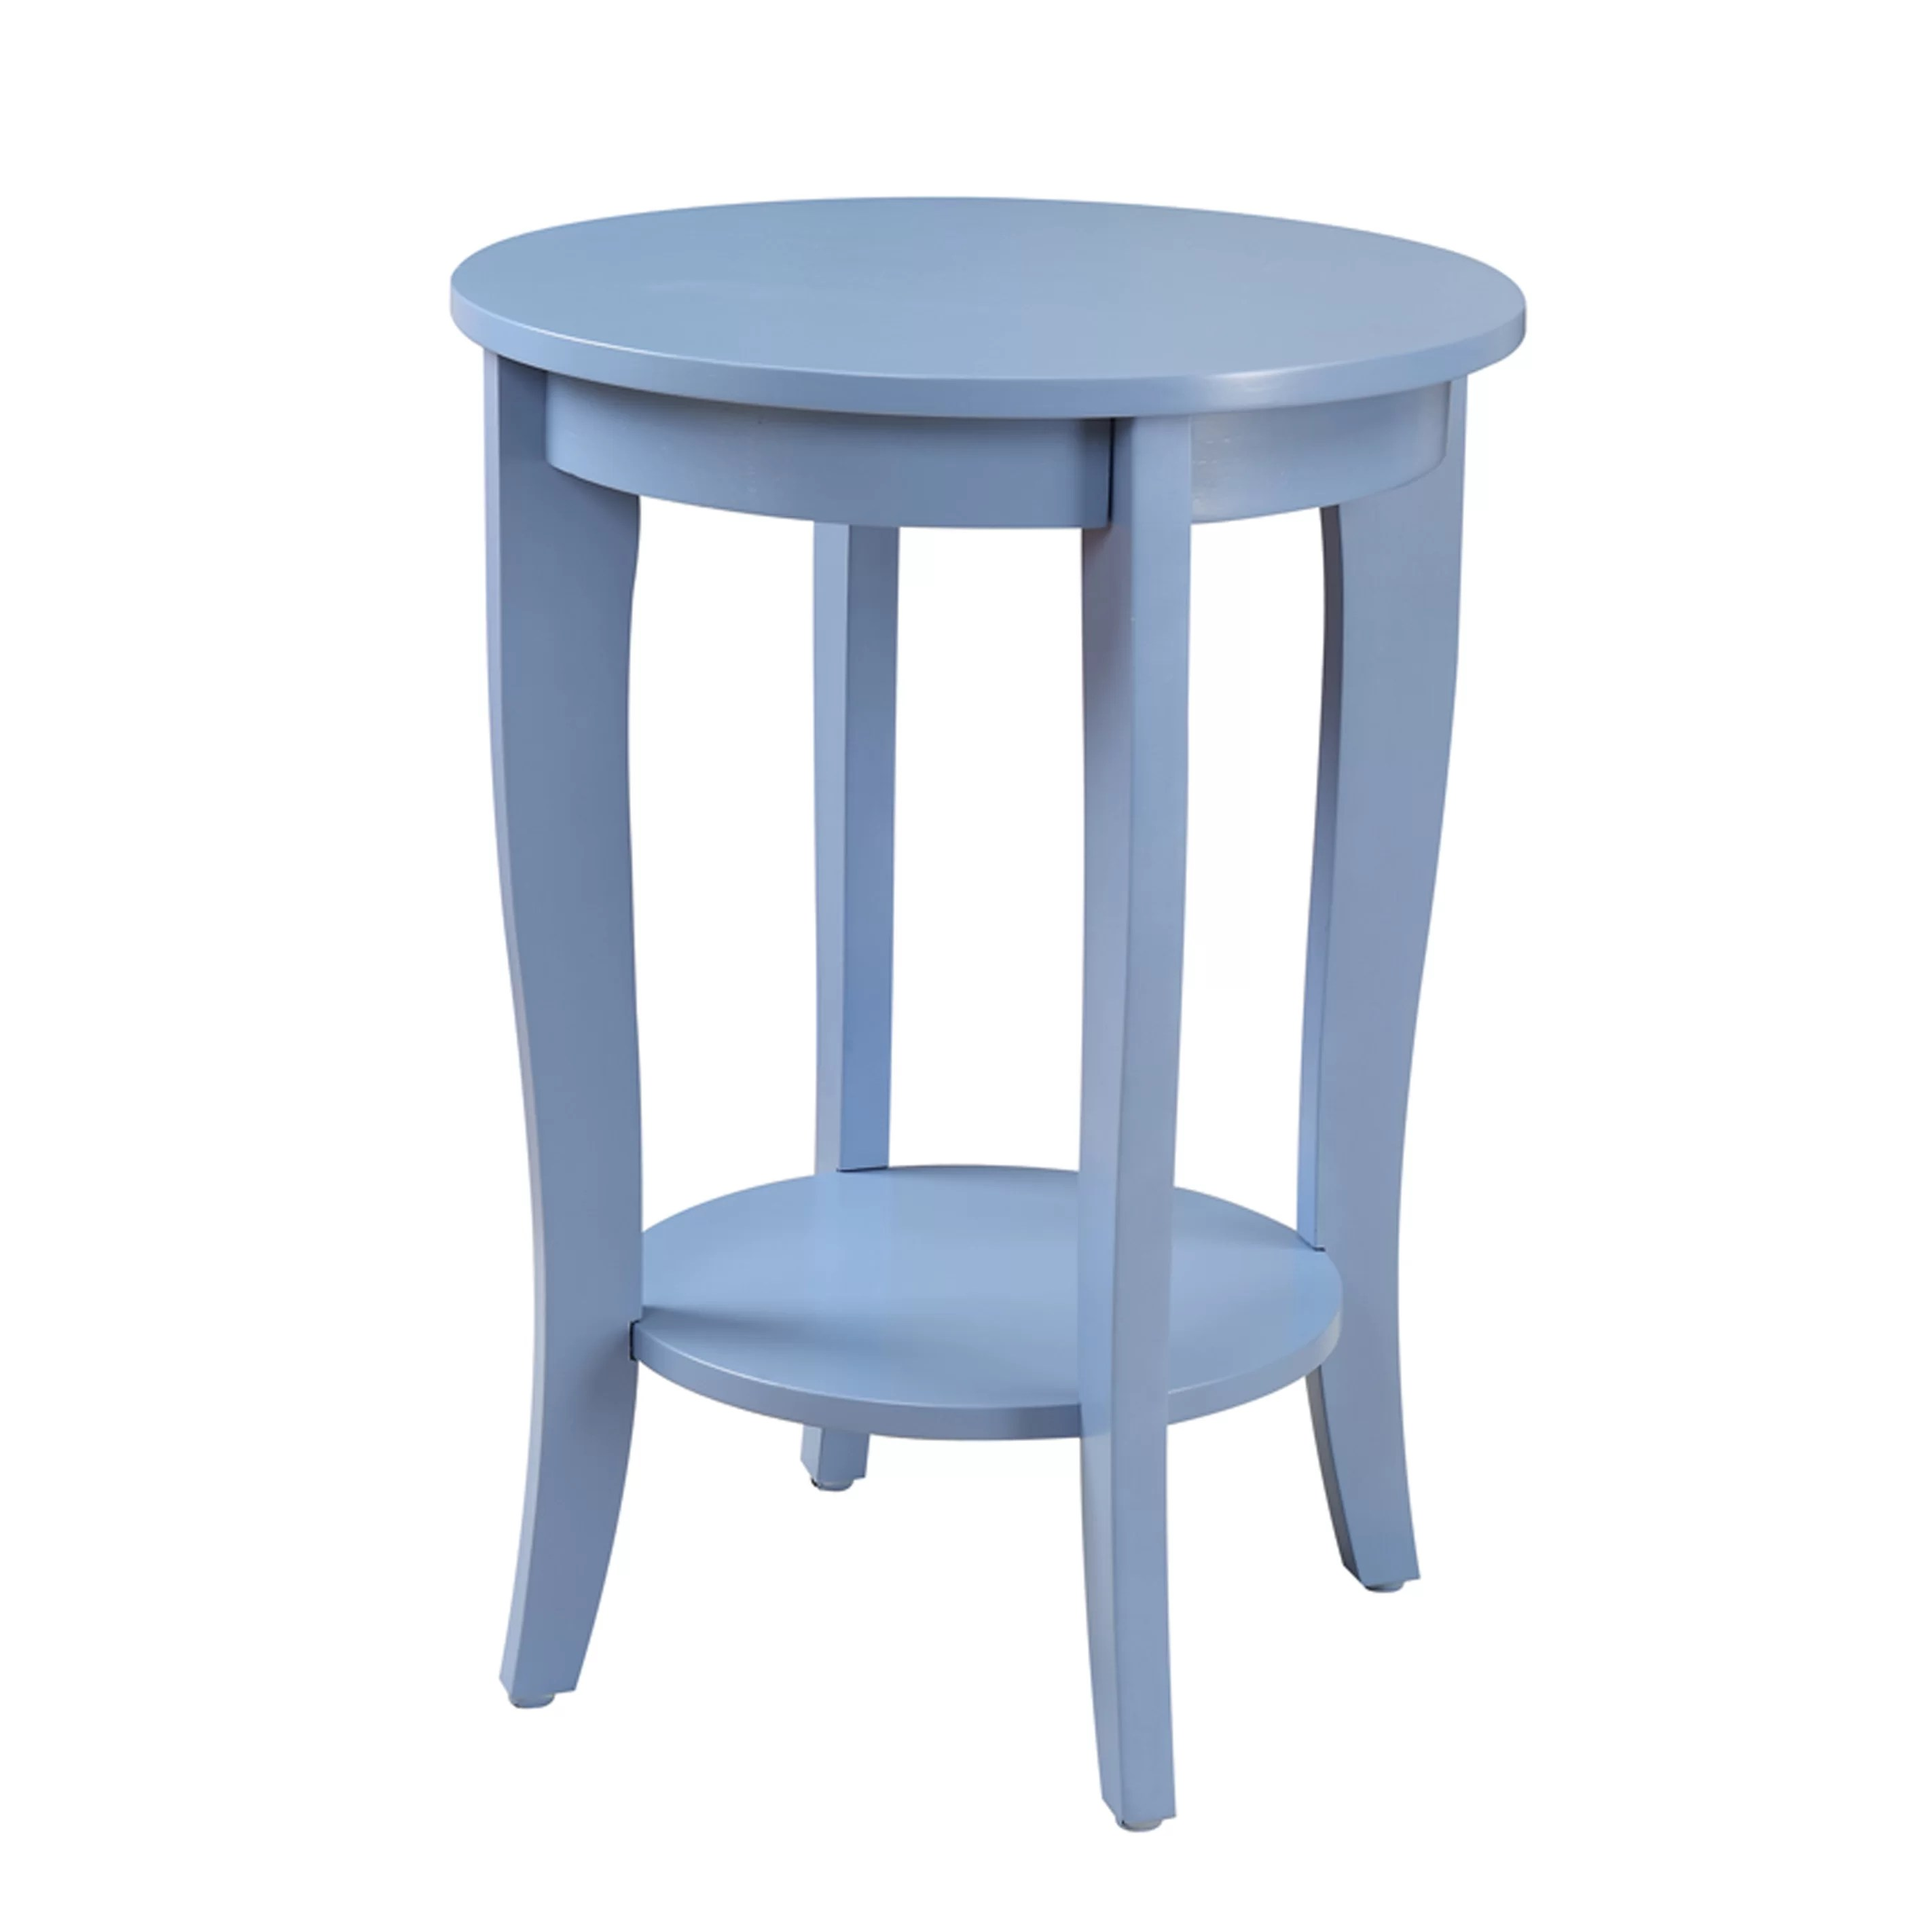 Circular End Tables Convenience Concepts American Heritage Round End Table